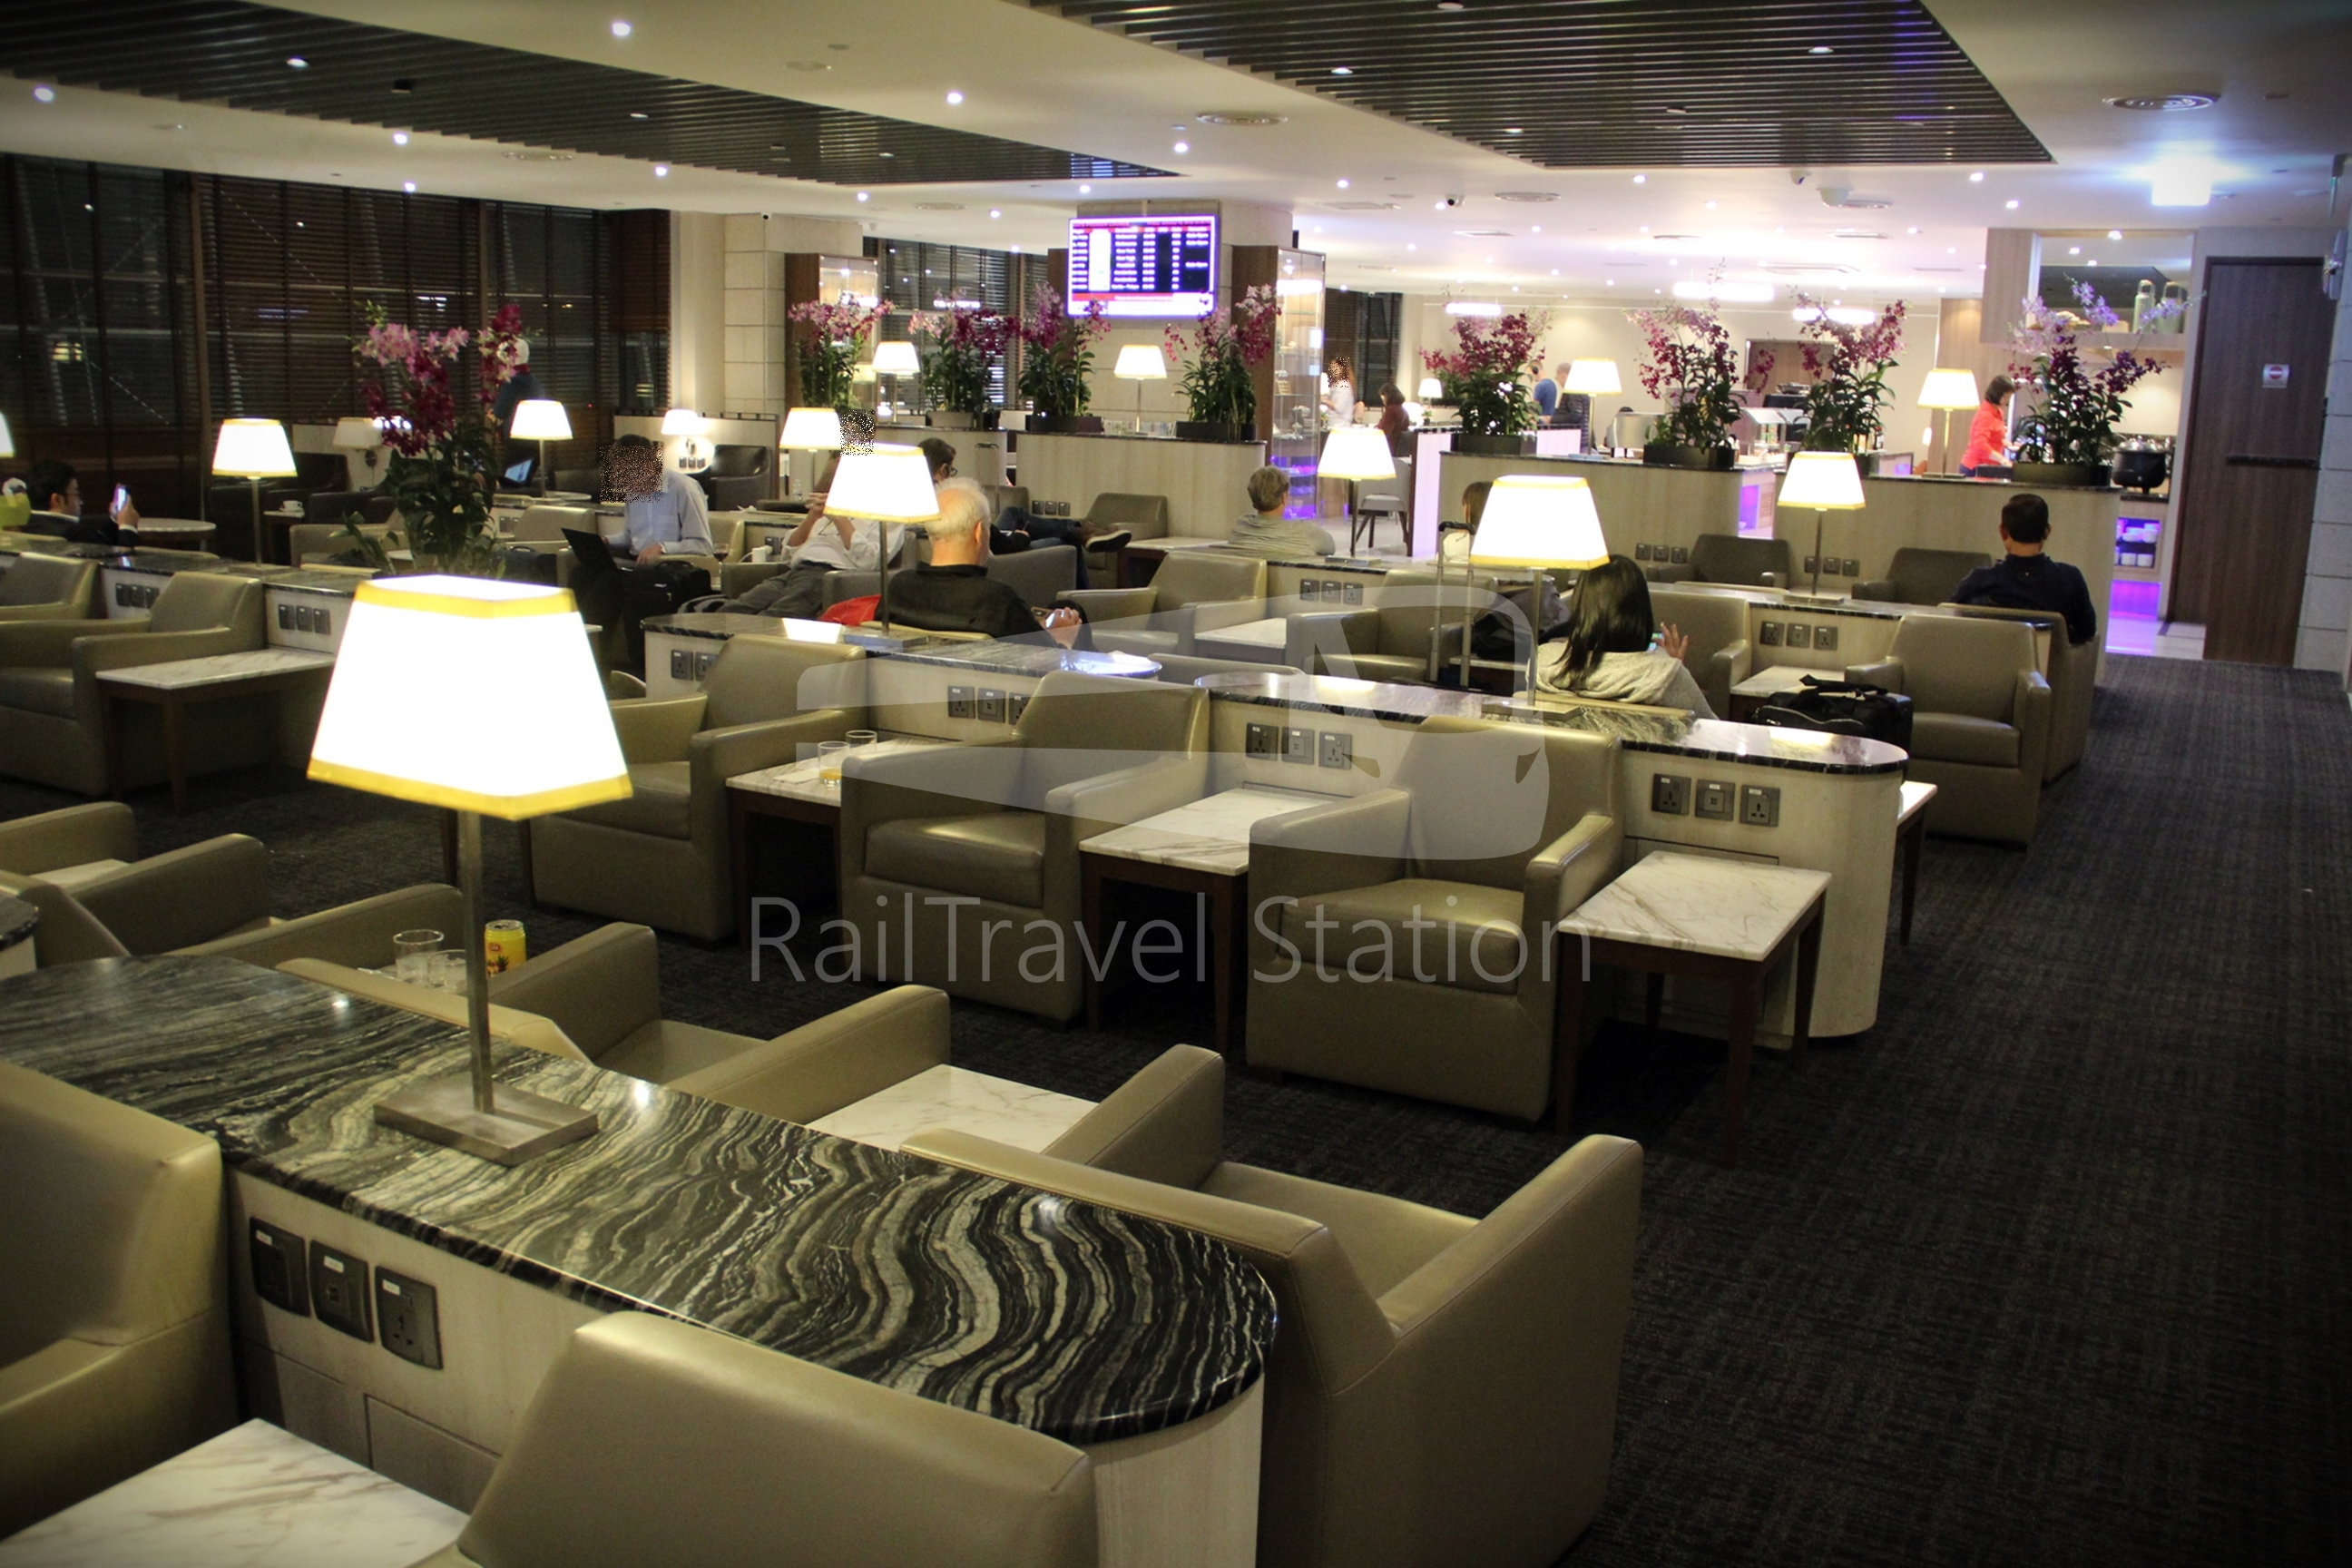 Lounge Review – SATS Premier Lounge 2 (Changi Airport Terminal 2): Possibly A Well-Stocked Lounge, Just Don't Visit It Too Late At Night